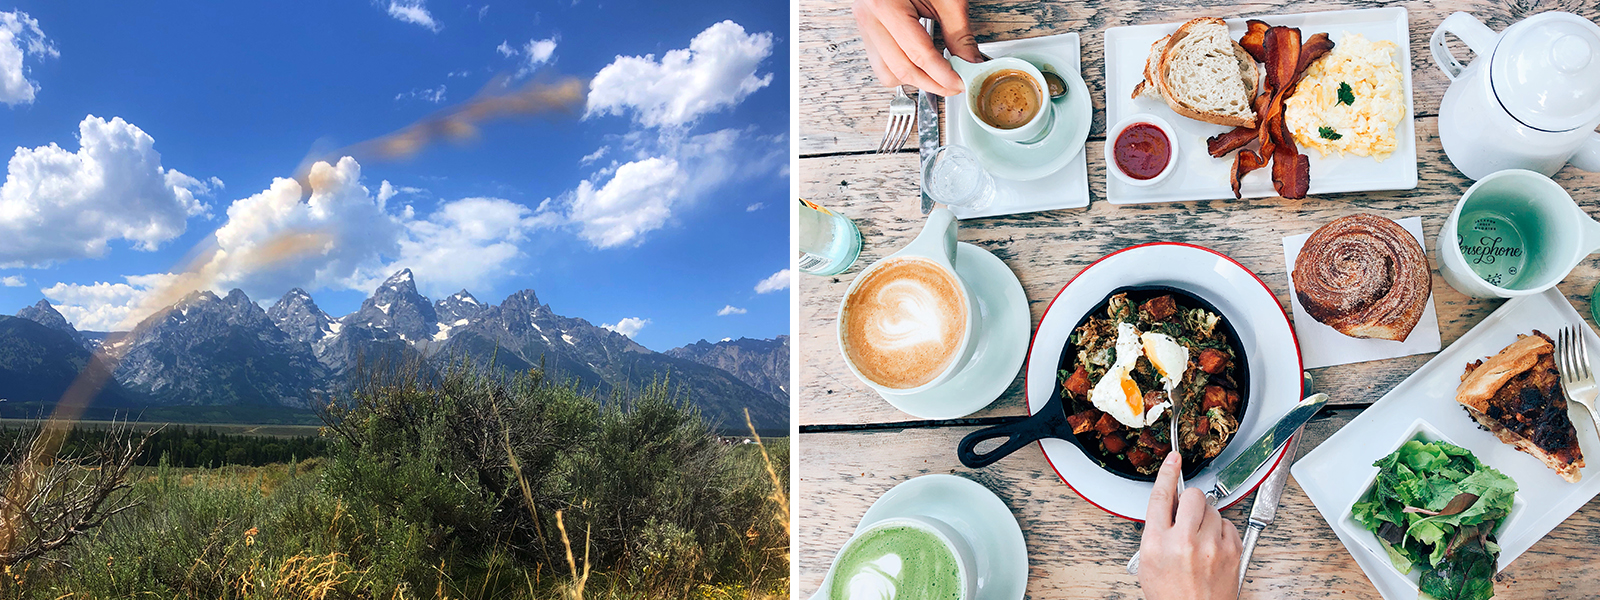 Jackson Hole, Wyoming and meal at Persephone Bakery.